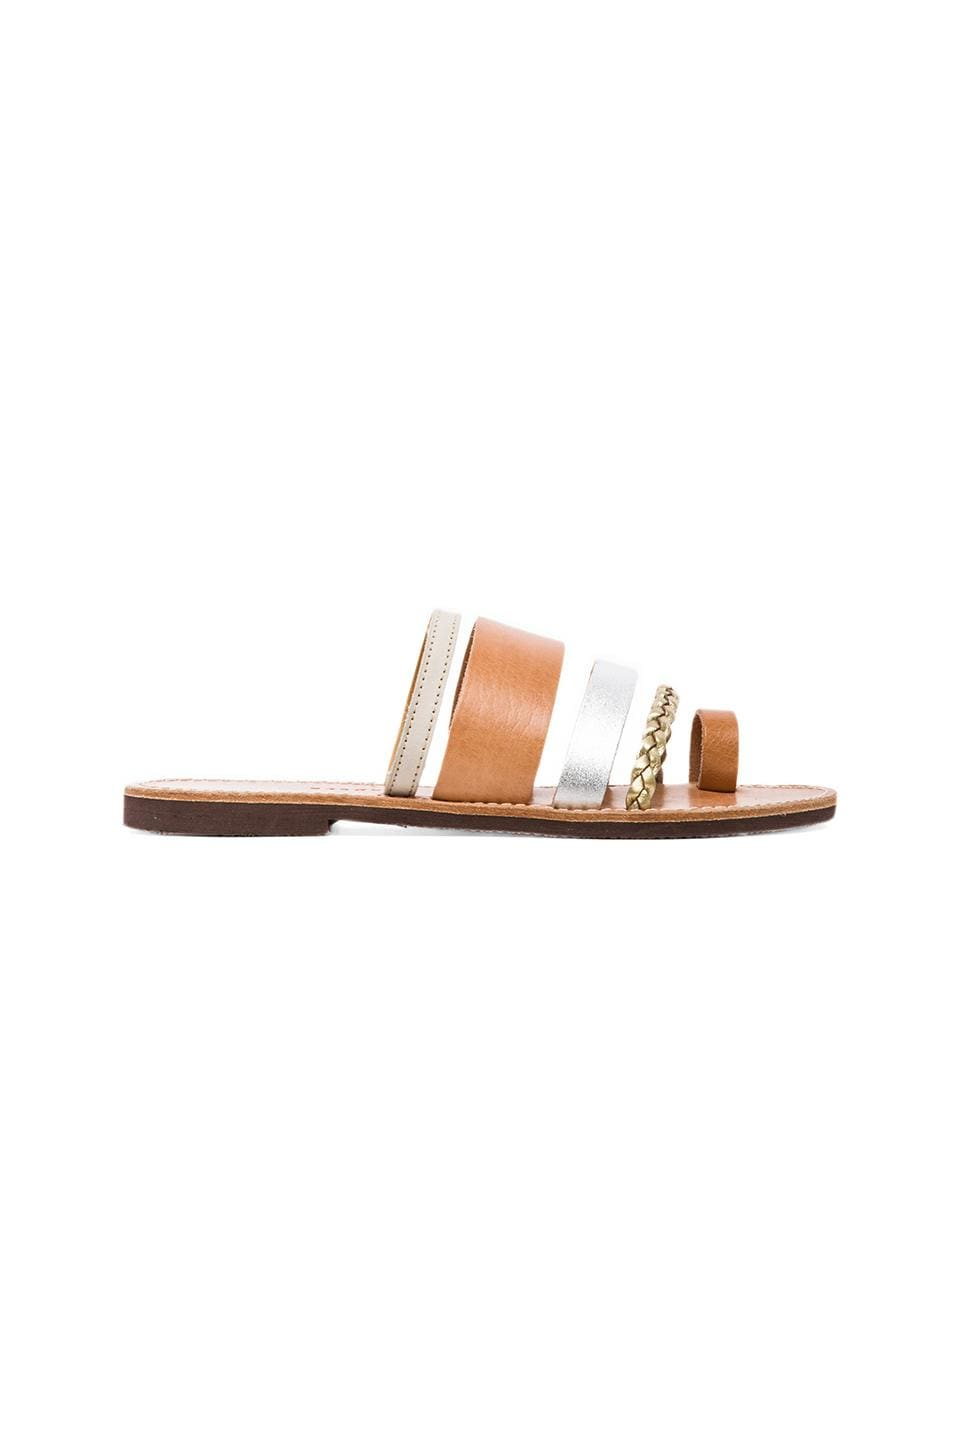 isapera Gerbera Sandal in Metallic Mix